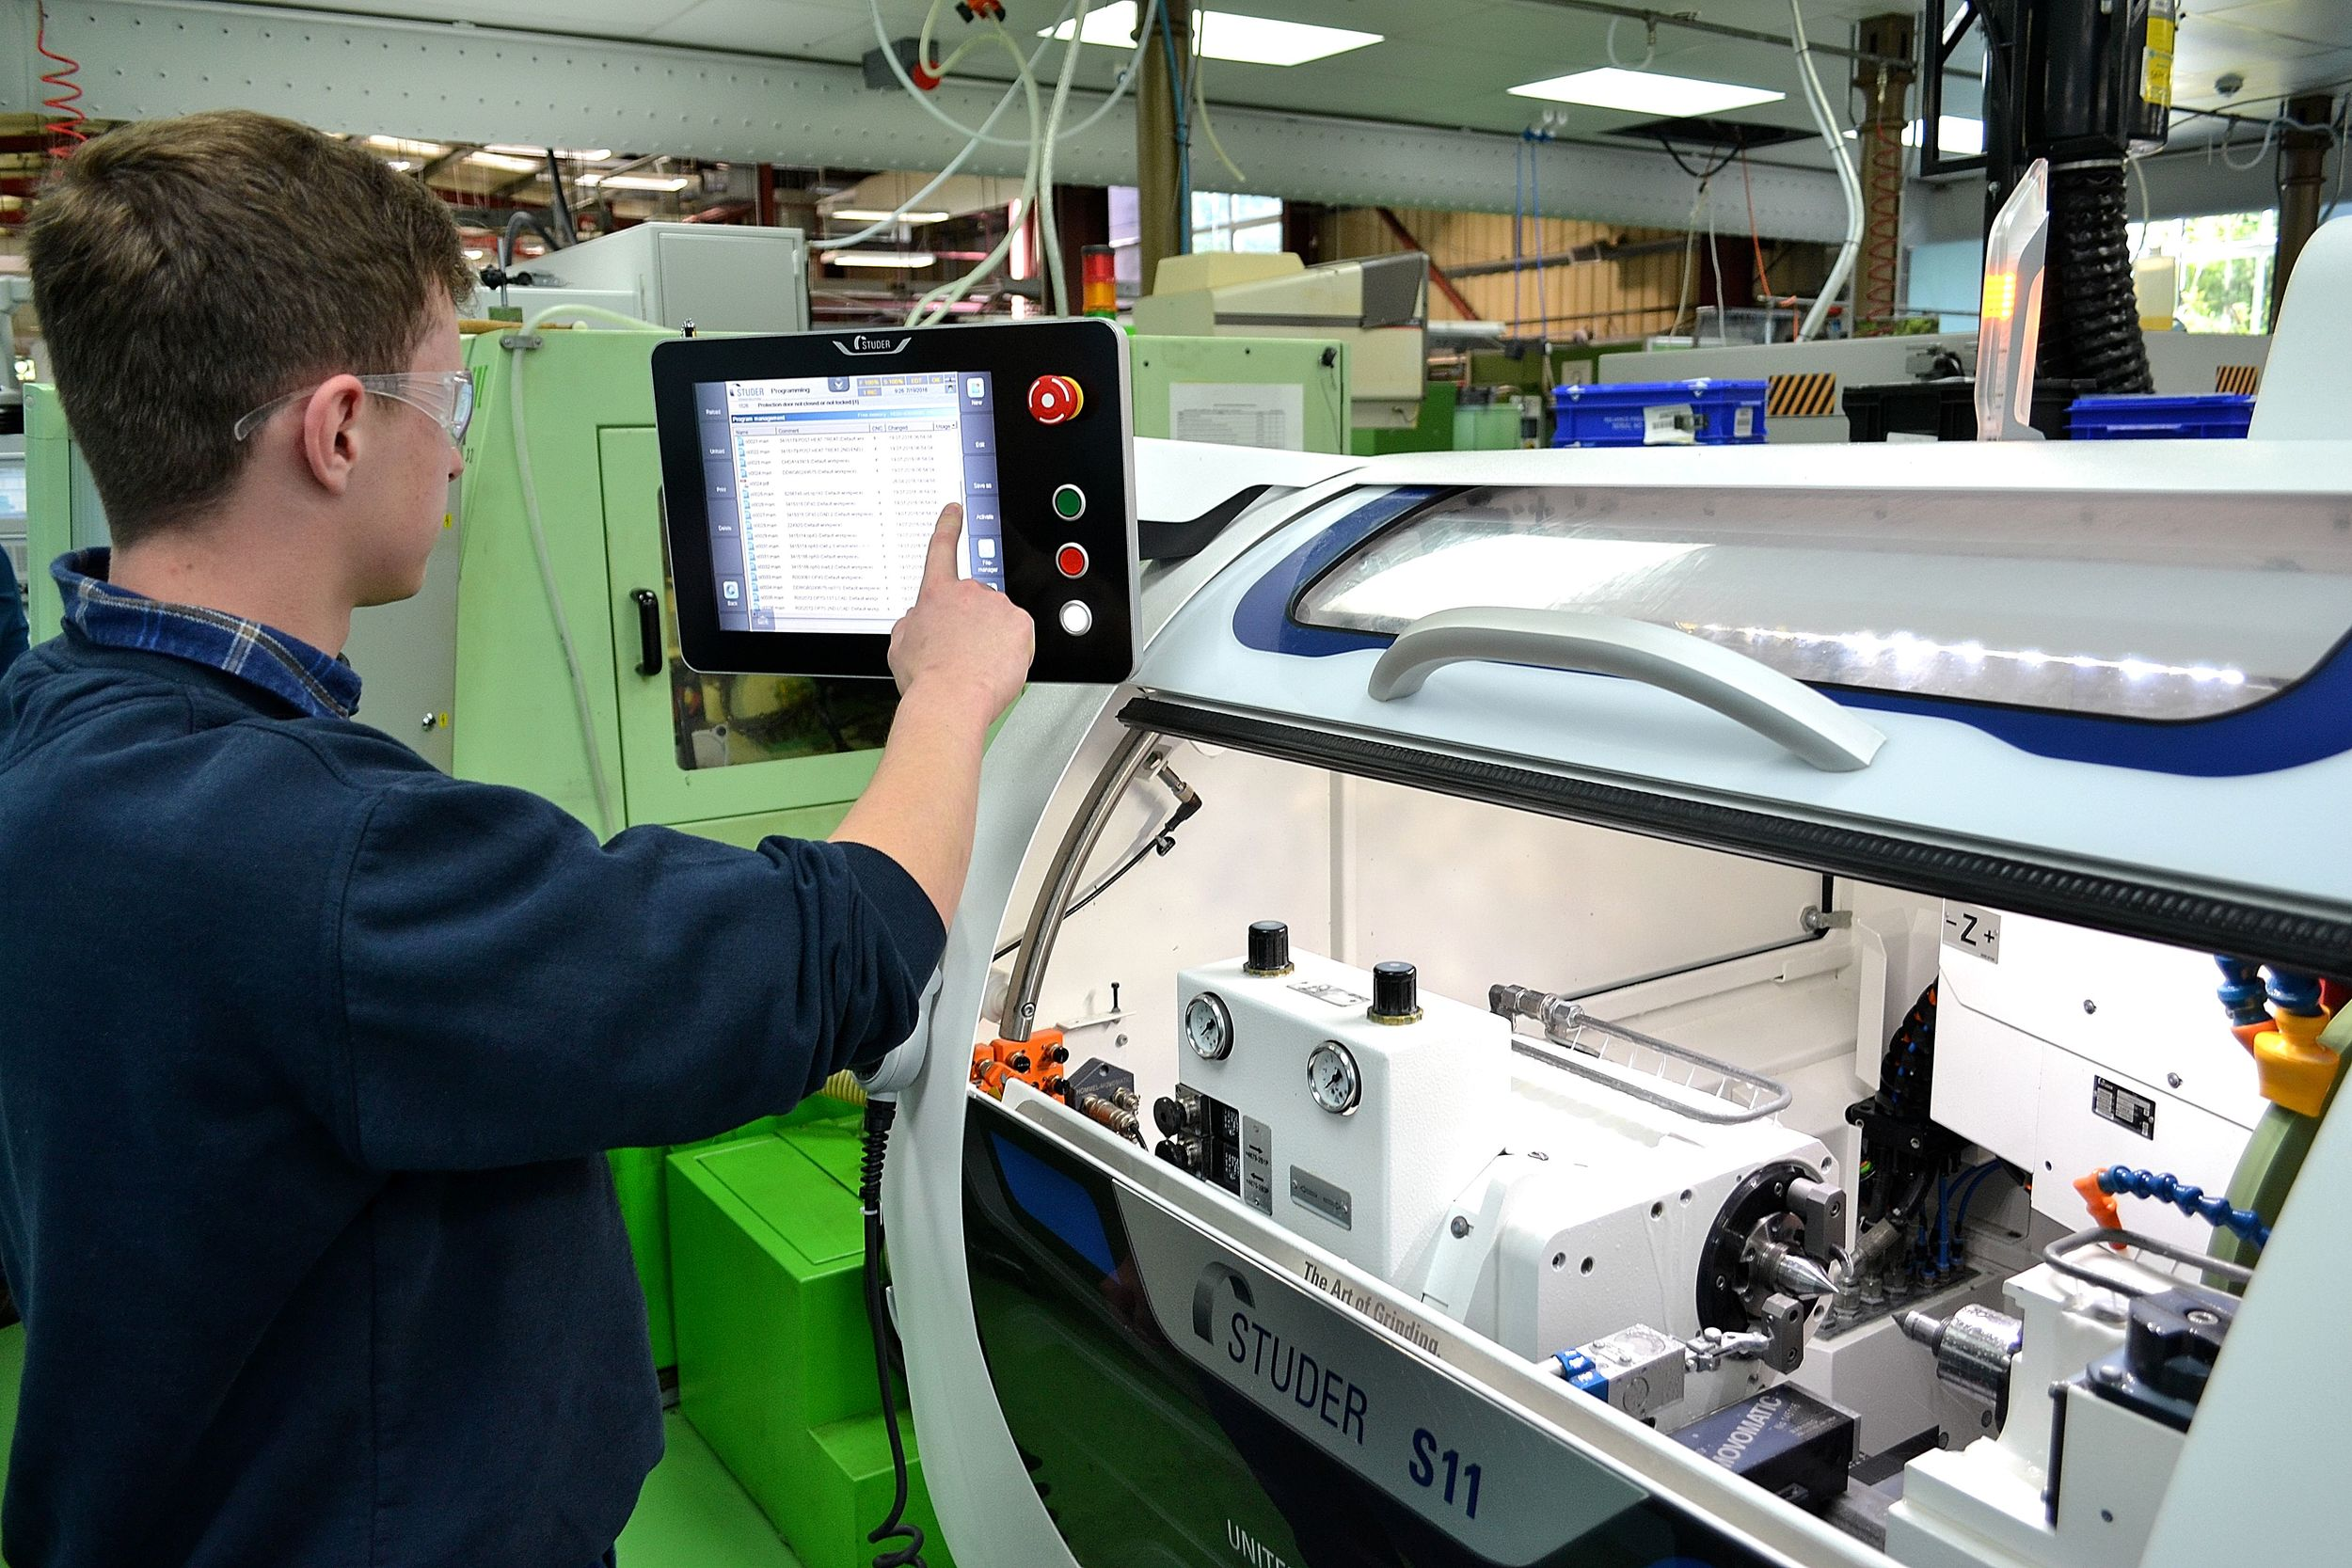 The S11 is easy to program using the touch-screen interface